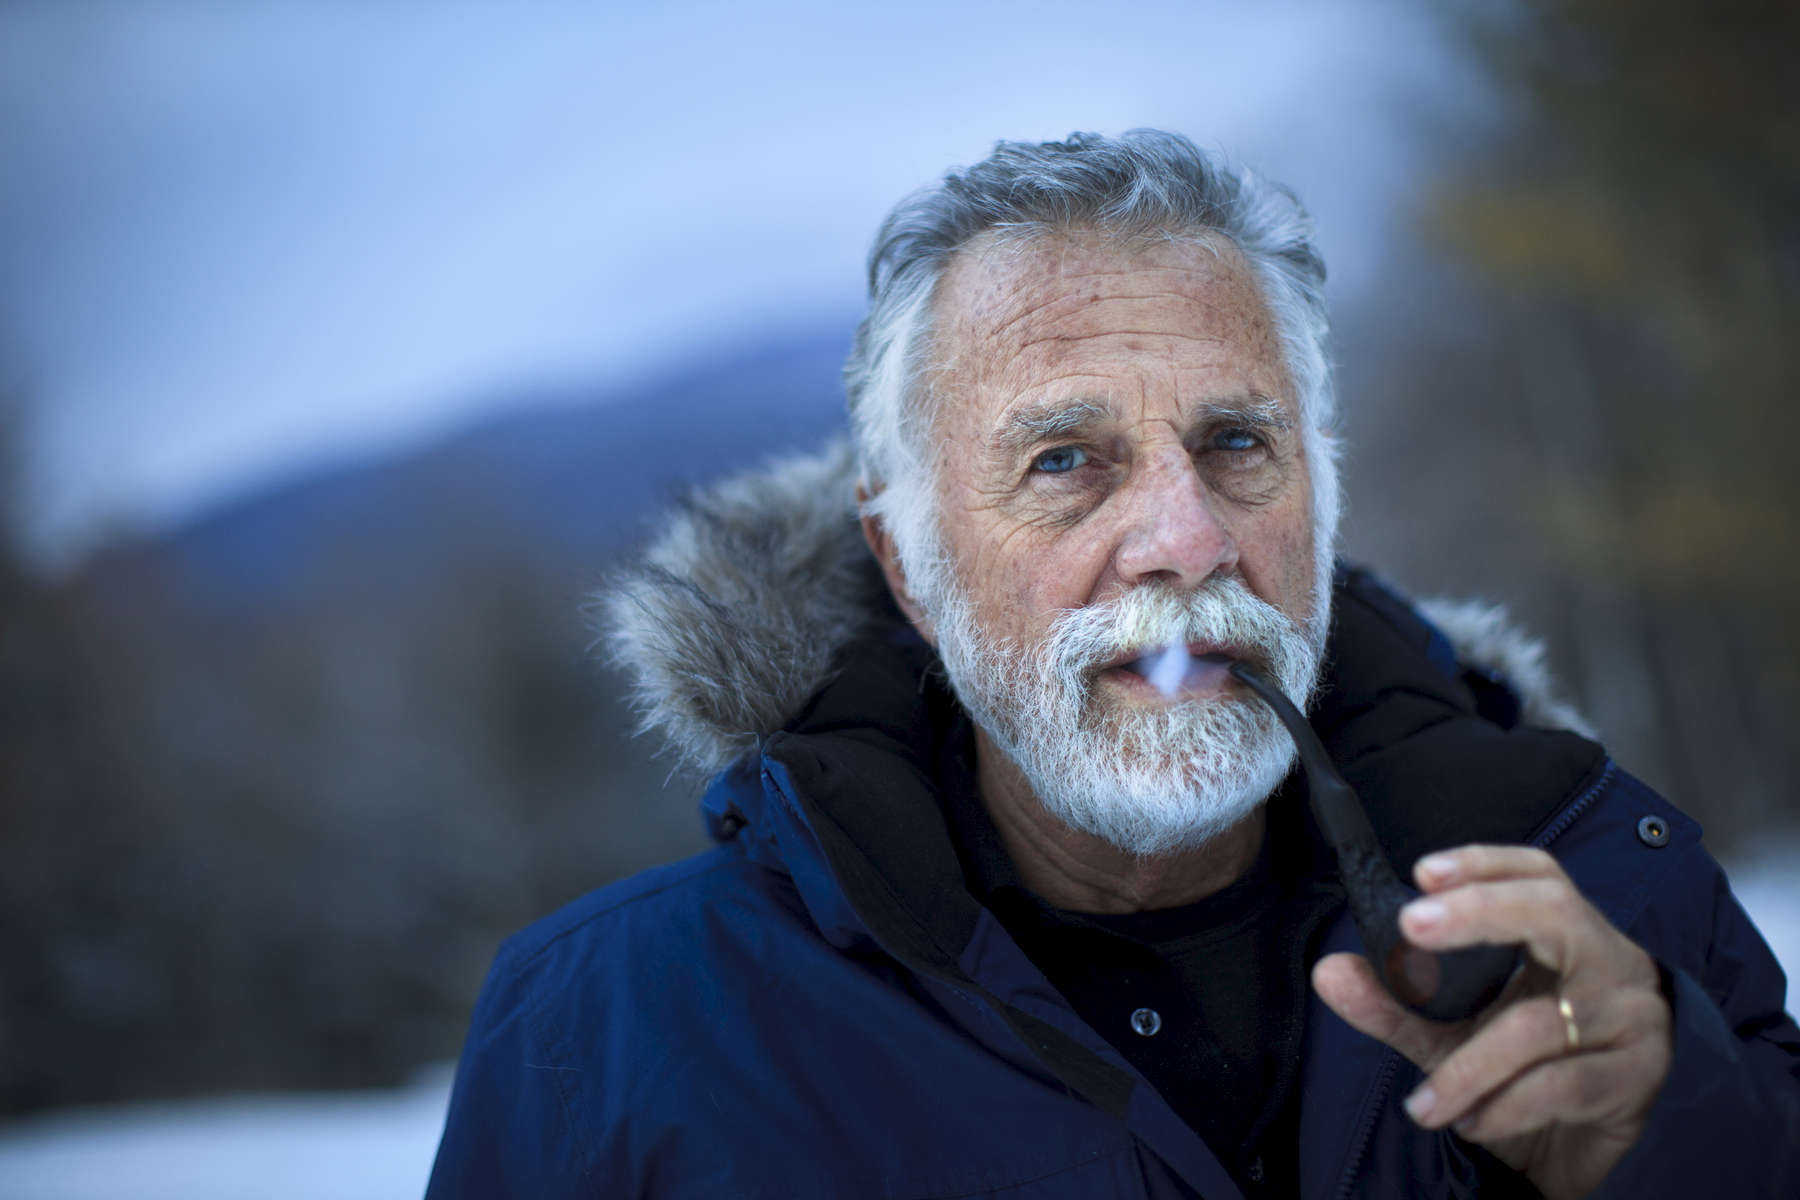 1/10/2014 - Manchester Center, VT -  Jonathan Goldsmith, cq, AKA {quote}The Most Interesting Man in the World,{quote} the cult-like figure in the highly popular Dos Equis beer commercials, lives a quiet life in the woods in Manchester Center, VT. He is trying to remake himself as the leading advocate for removing land mines and cleaning up the legacy of war in combat zones around the world. Topic: goldsmith. Story by Bryan Bender/Globe Staff. Dina Rudick/Globe Staff